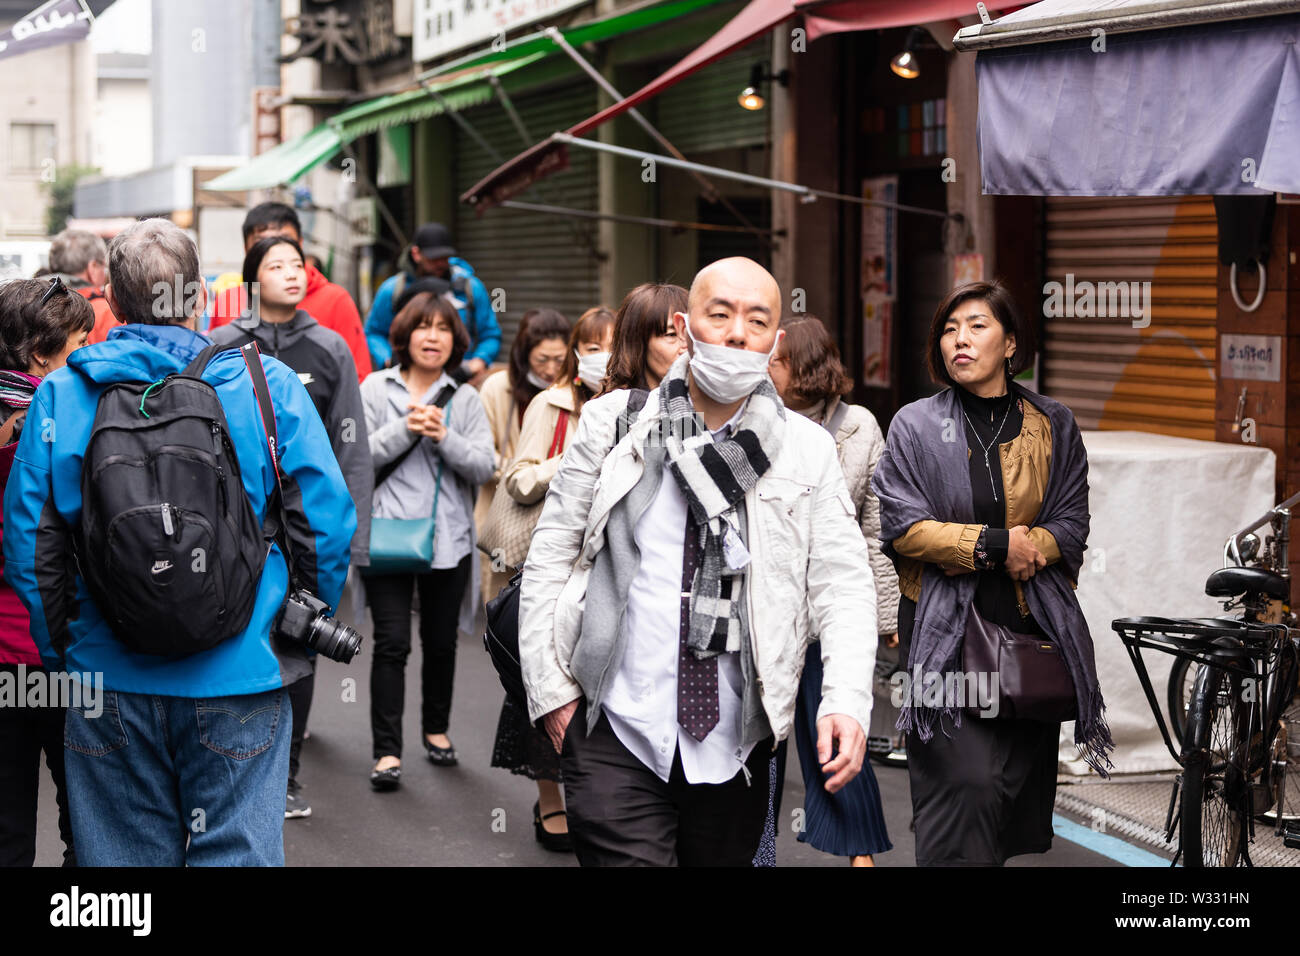 Tokyo, Japan - March 30, 2019: Chinese and Asian tourists, people walking on road street or alley by market by food vendors in Tsukiji outer fish mark - Stock Image